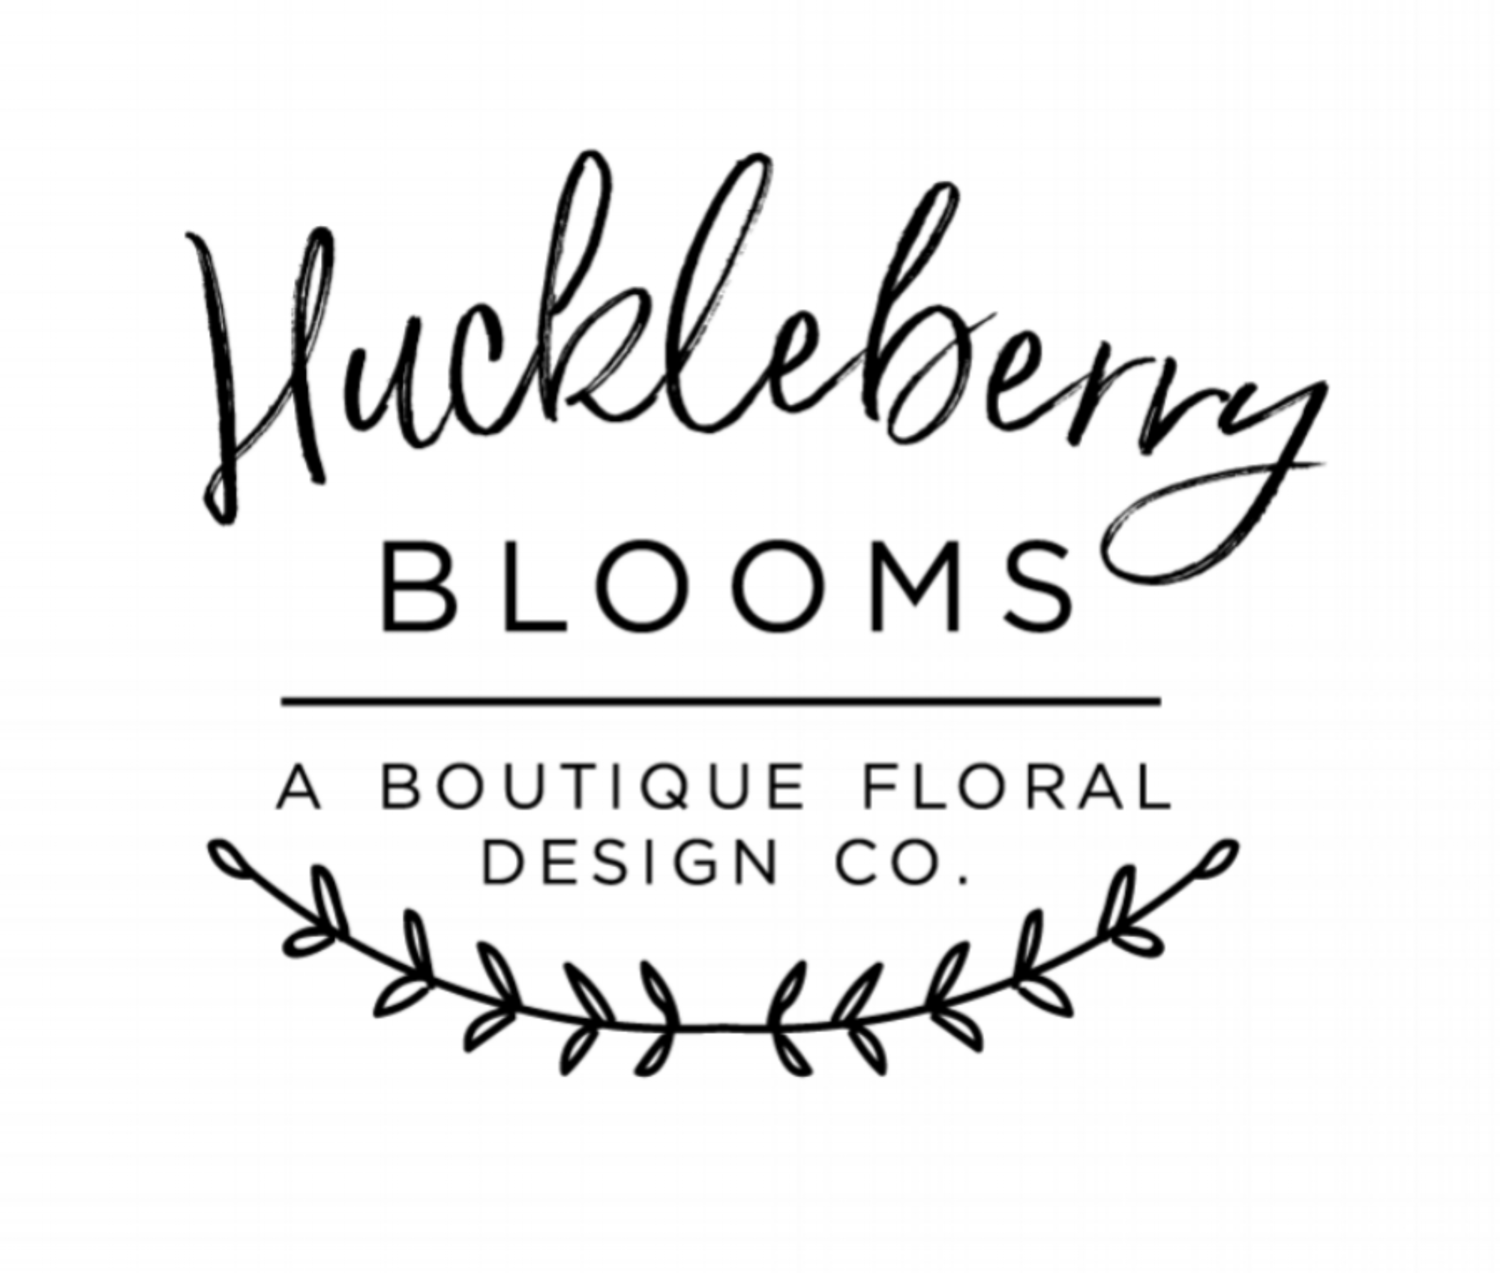 Huckleberry Blooms